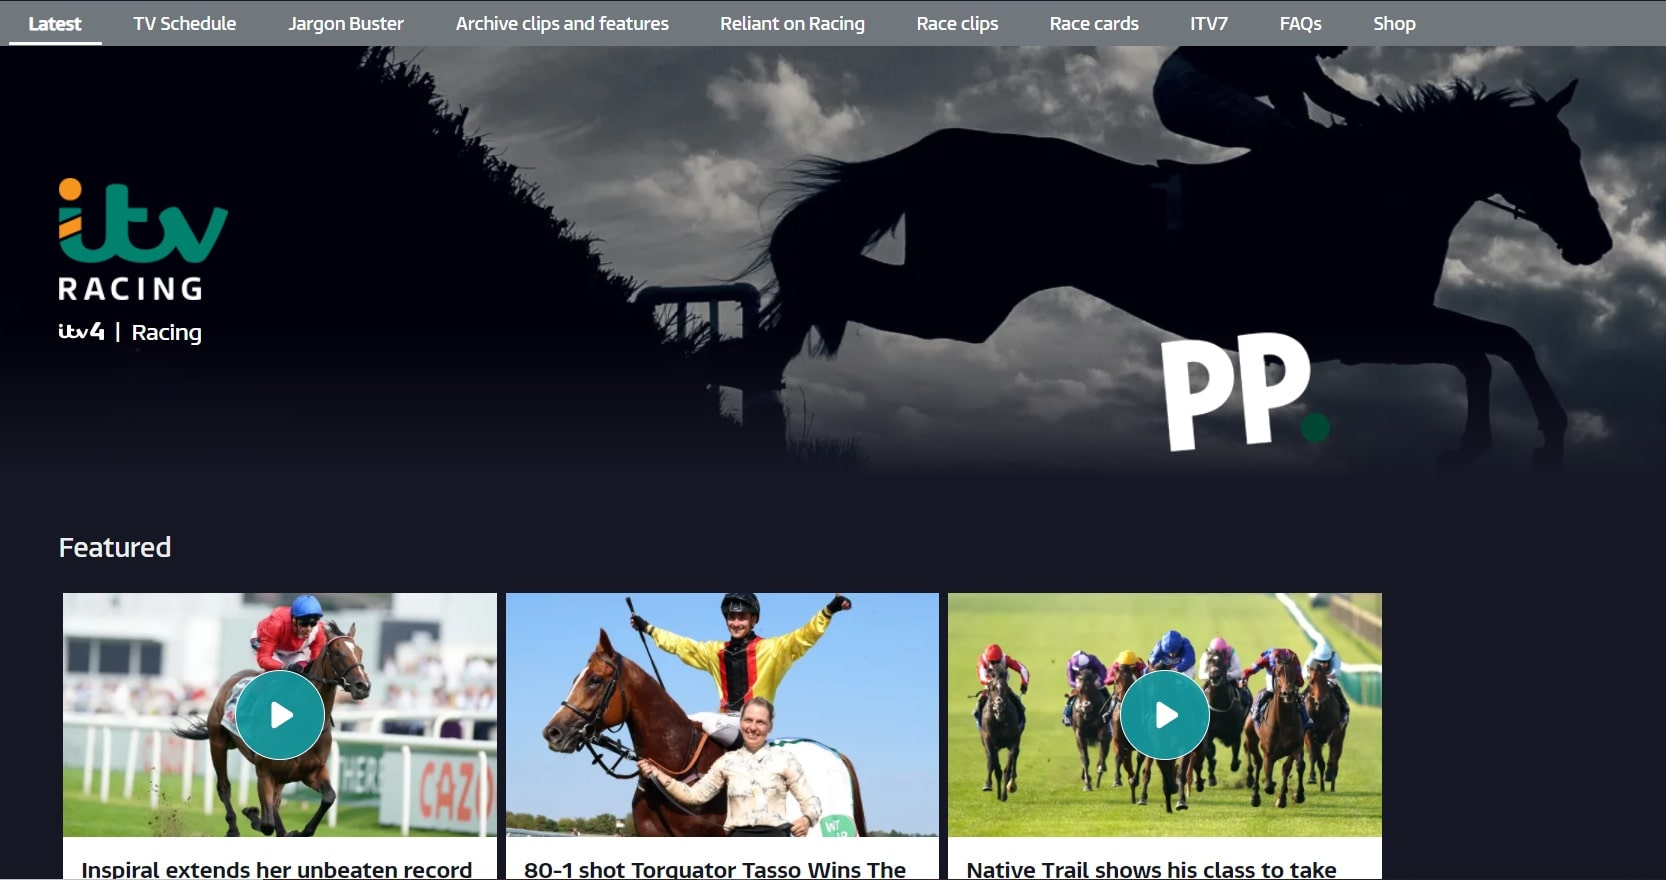 ITV Racing live horse racing streaming sites